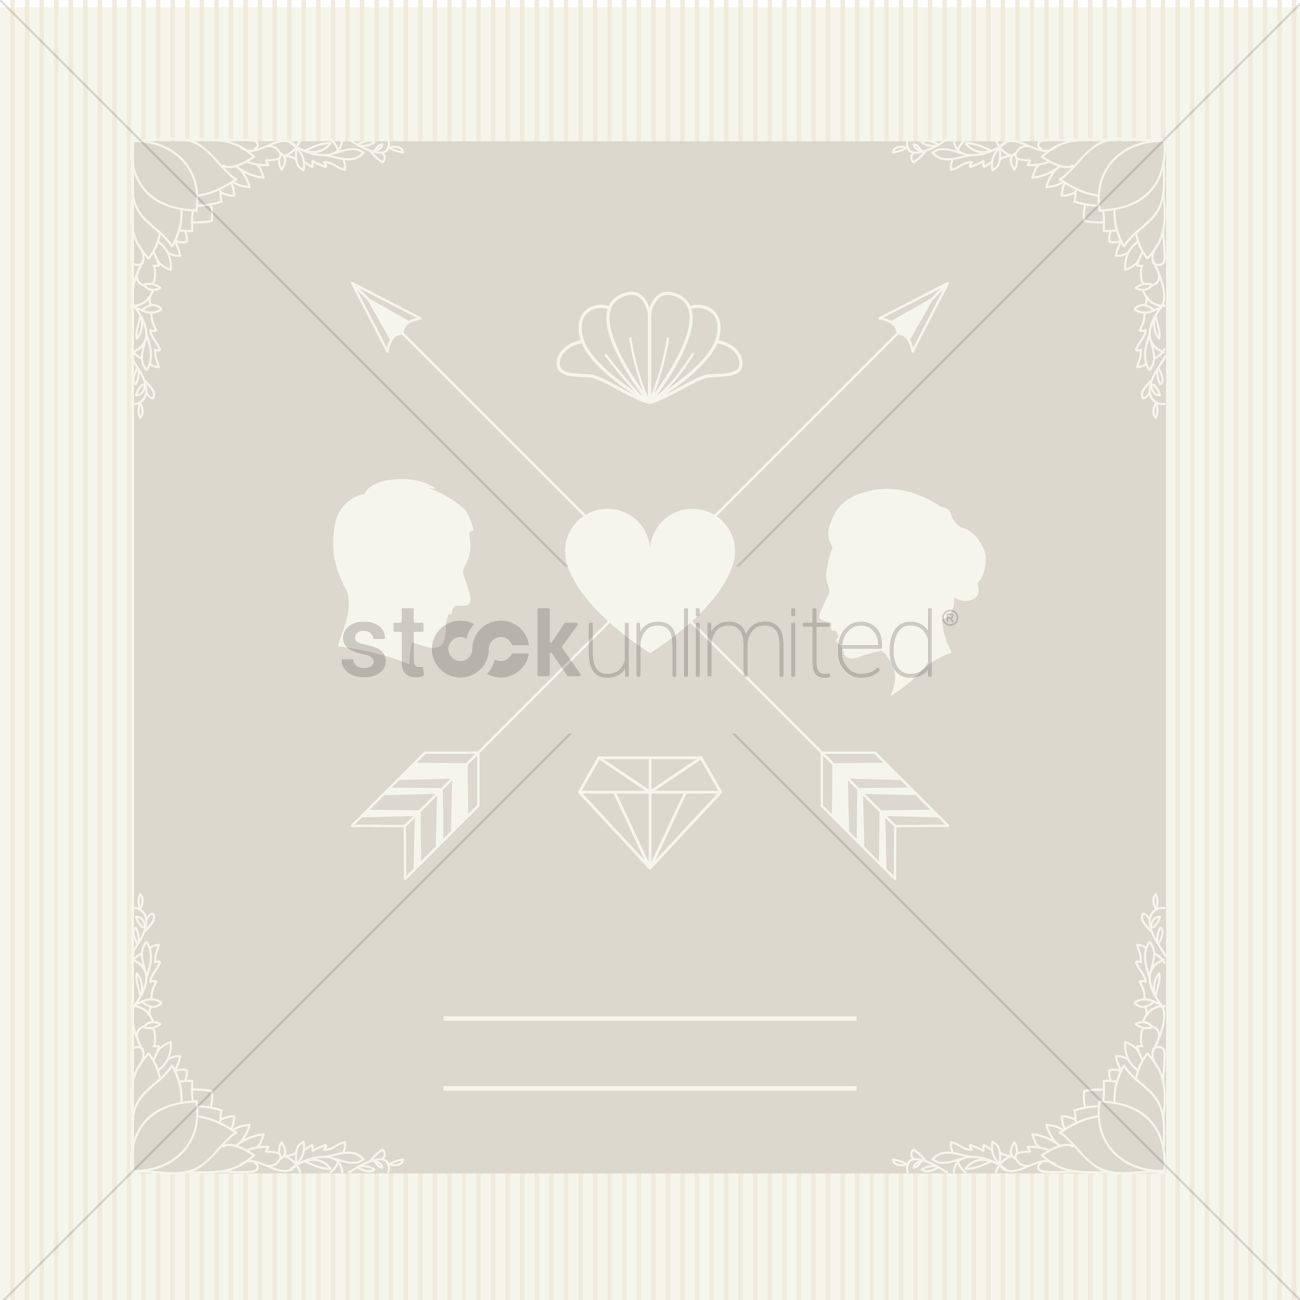 Wedding invitation card design Vector Image - 1992863 | StockUnlimited